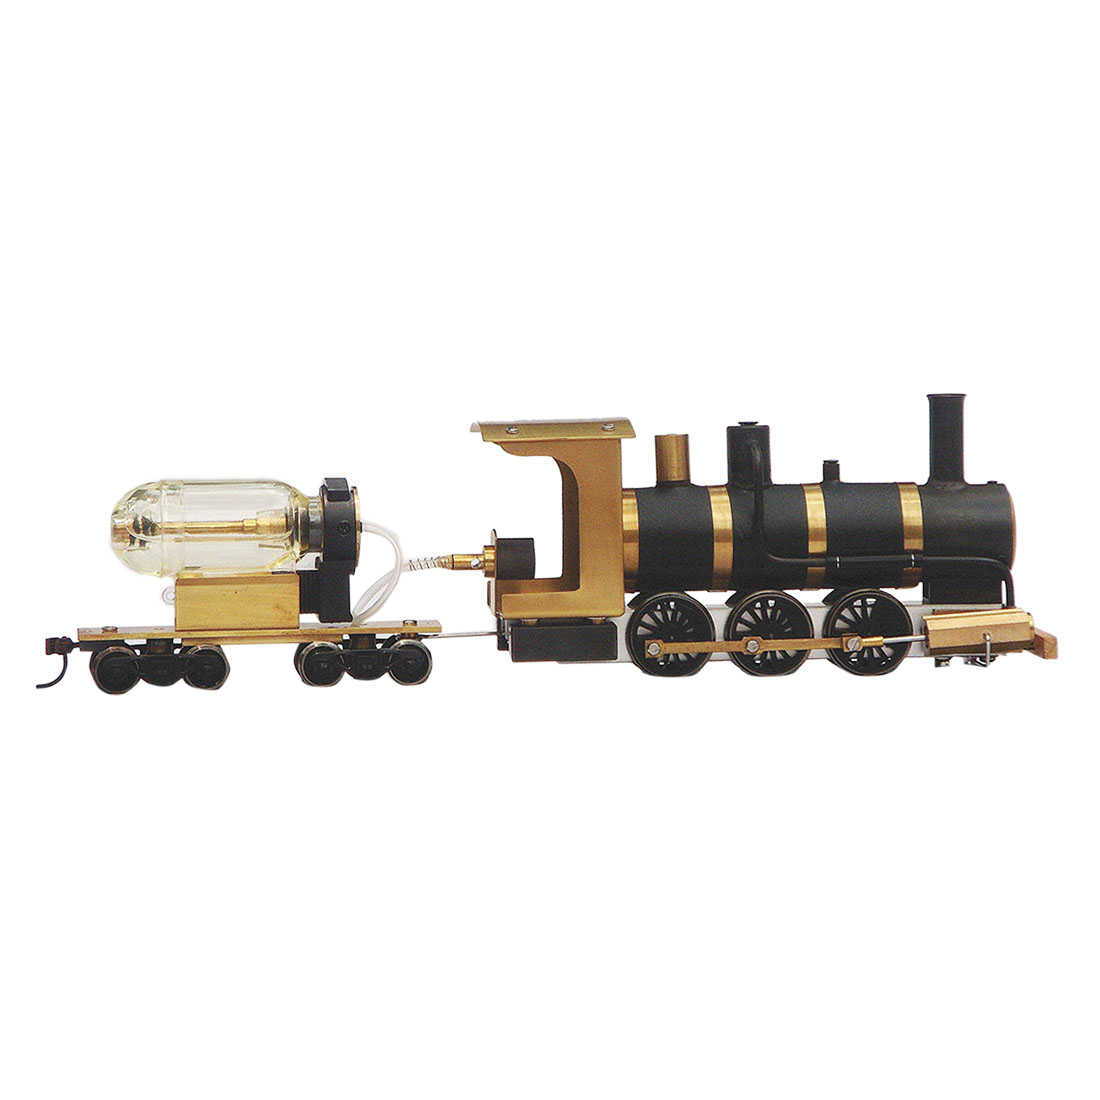 1:87 HO Scale Steam Drive Train Model Steam Locomotive Model Live Steam Engine with Track  Steam Engine Boiler Fuel Tank, etc.)